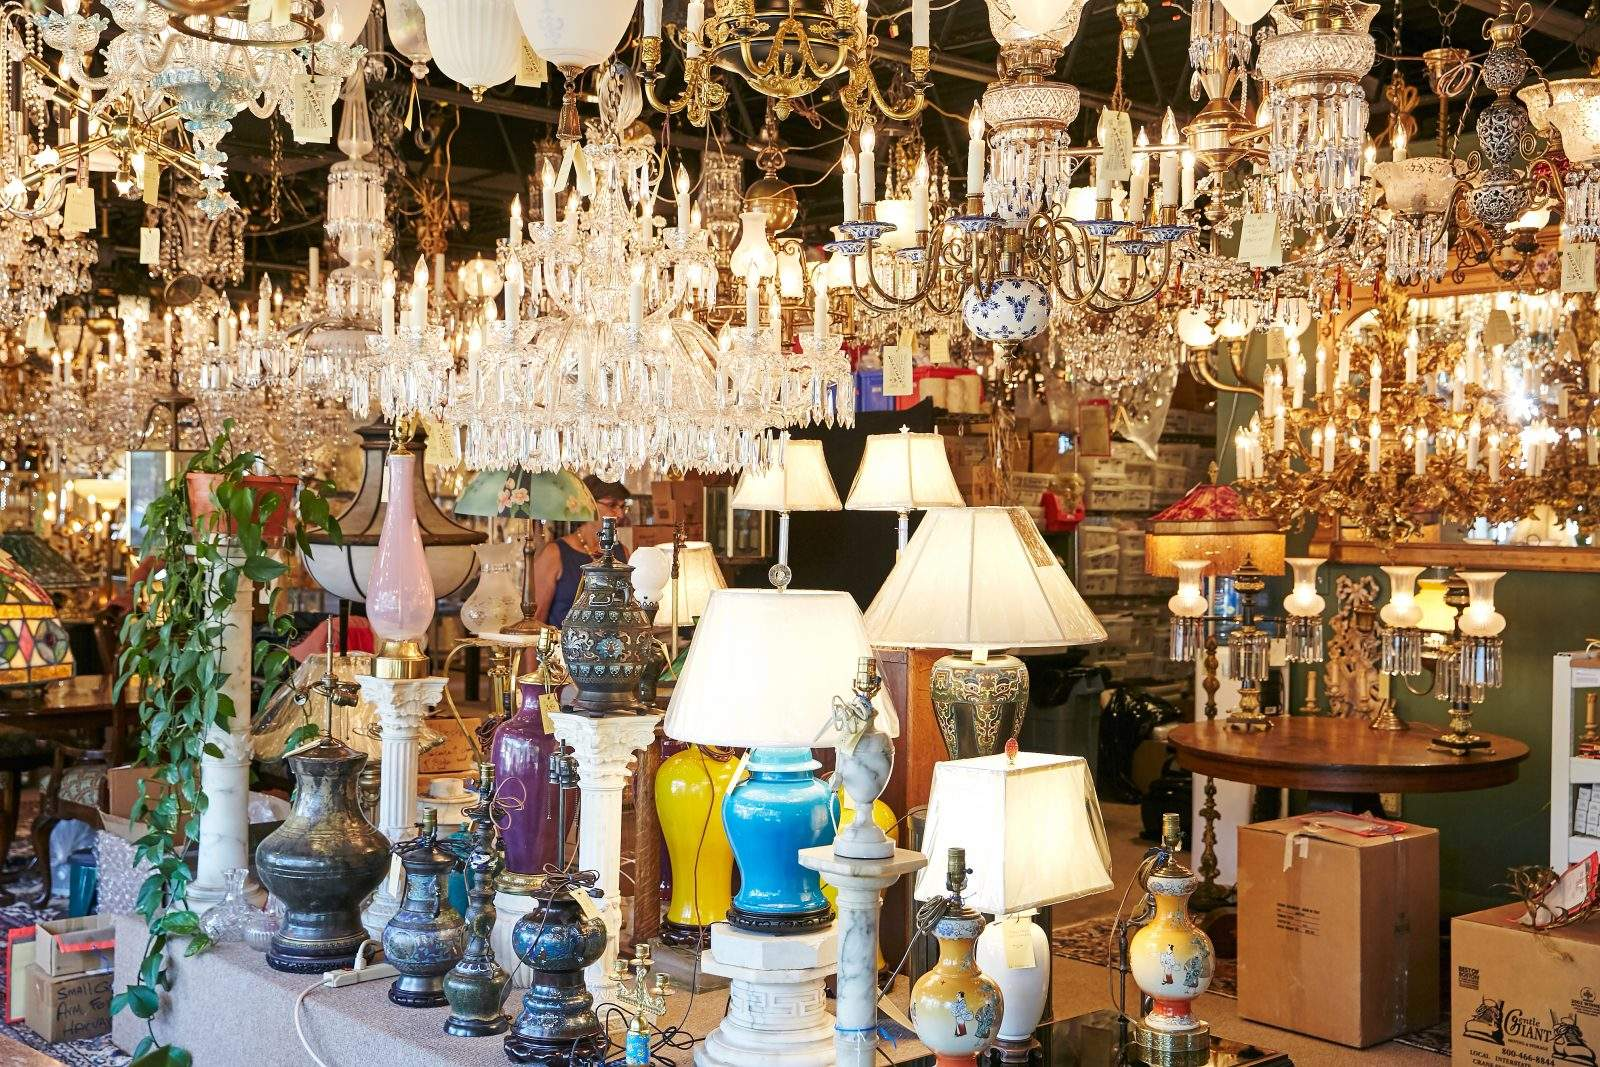 Hill showroom is staffed with experienced professionals ready to help you select from hundreds of high quality fully restored period lighting fixtures